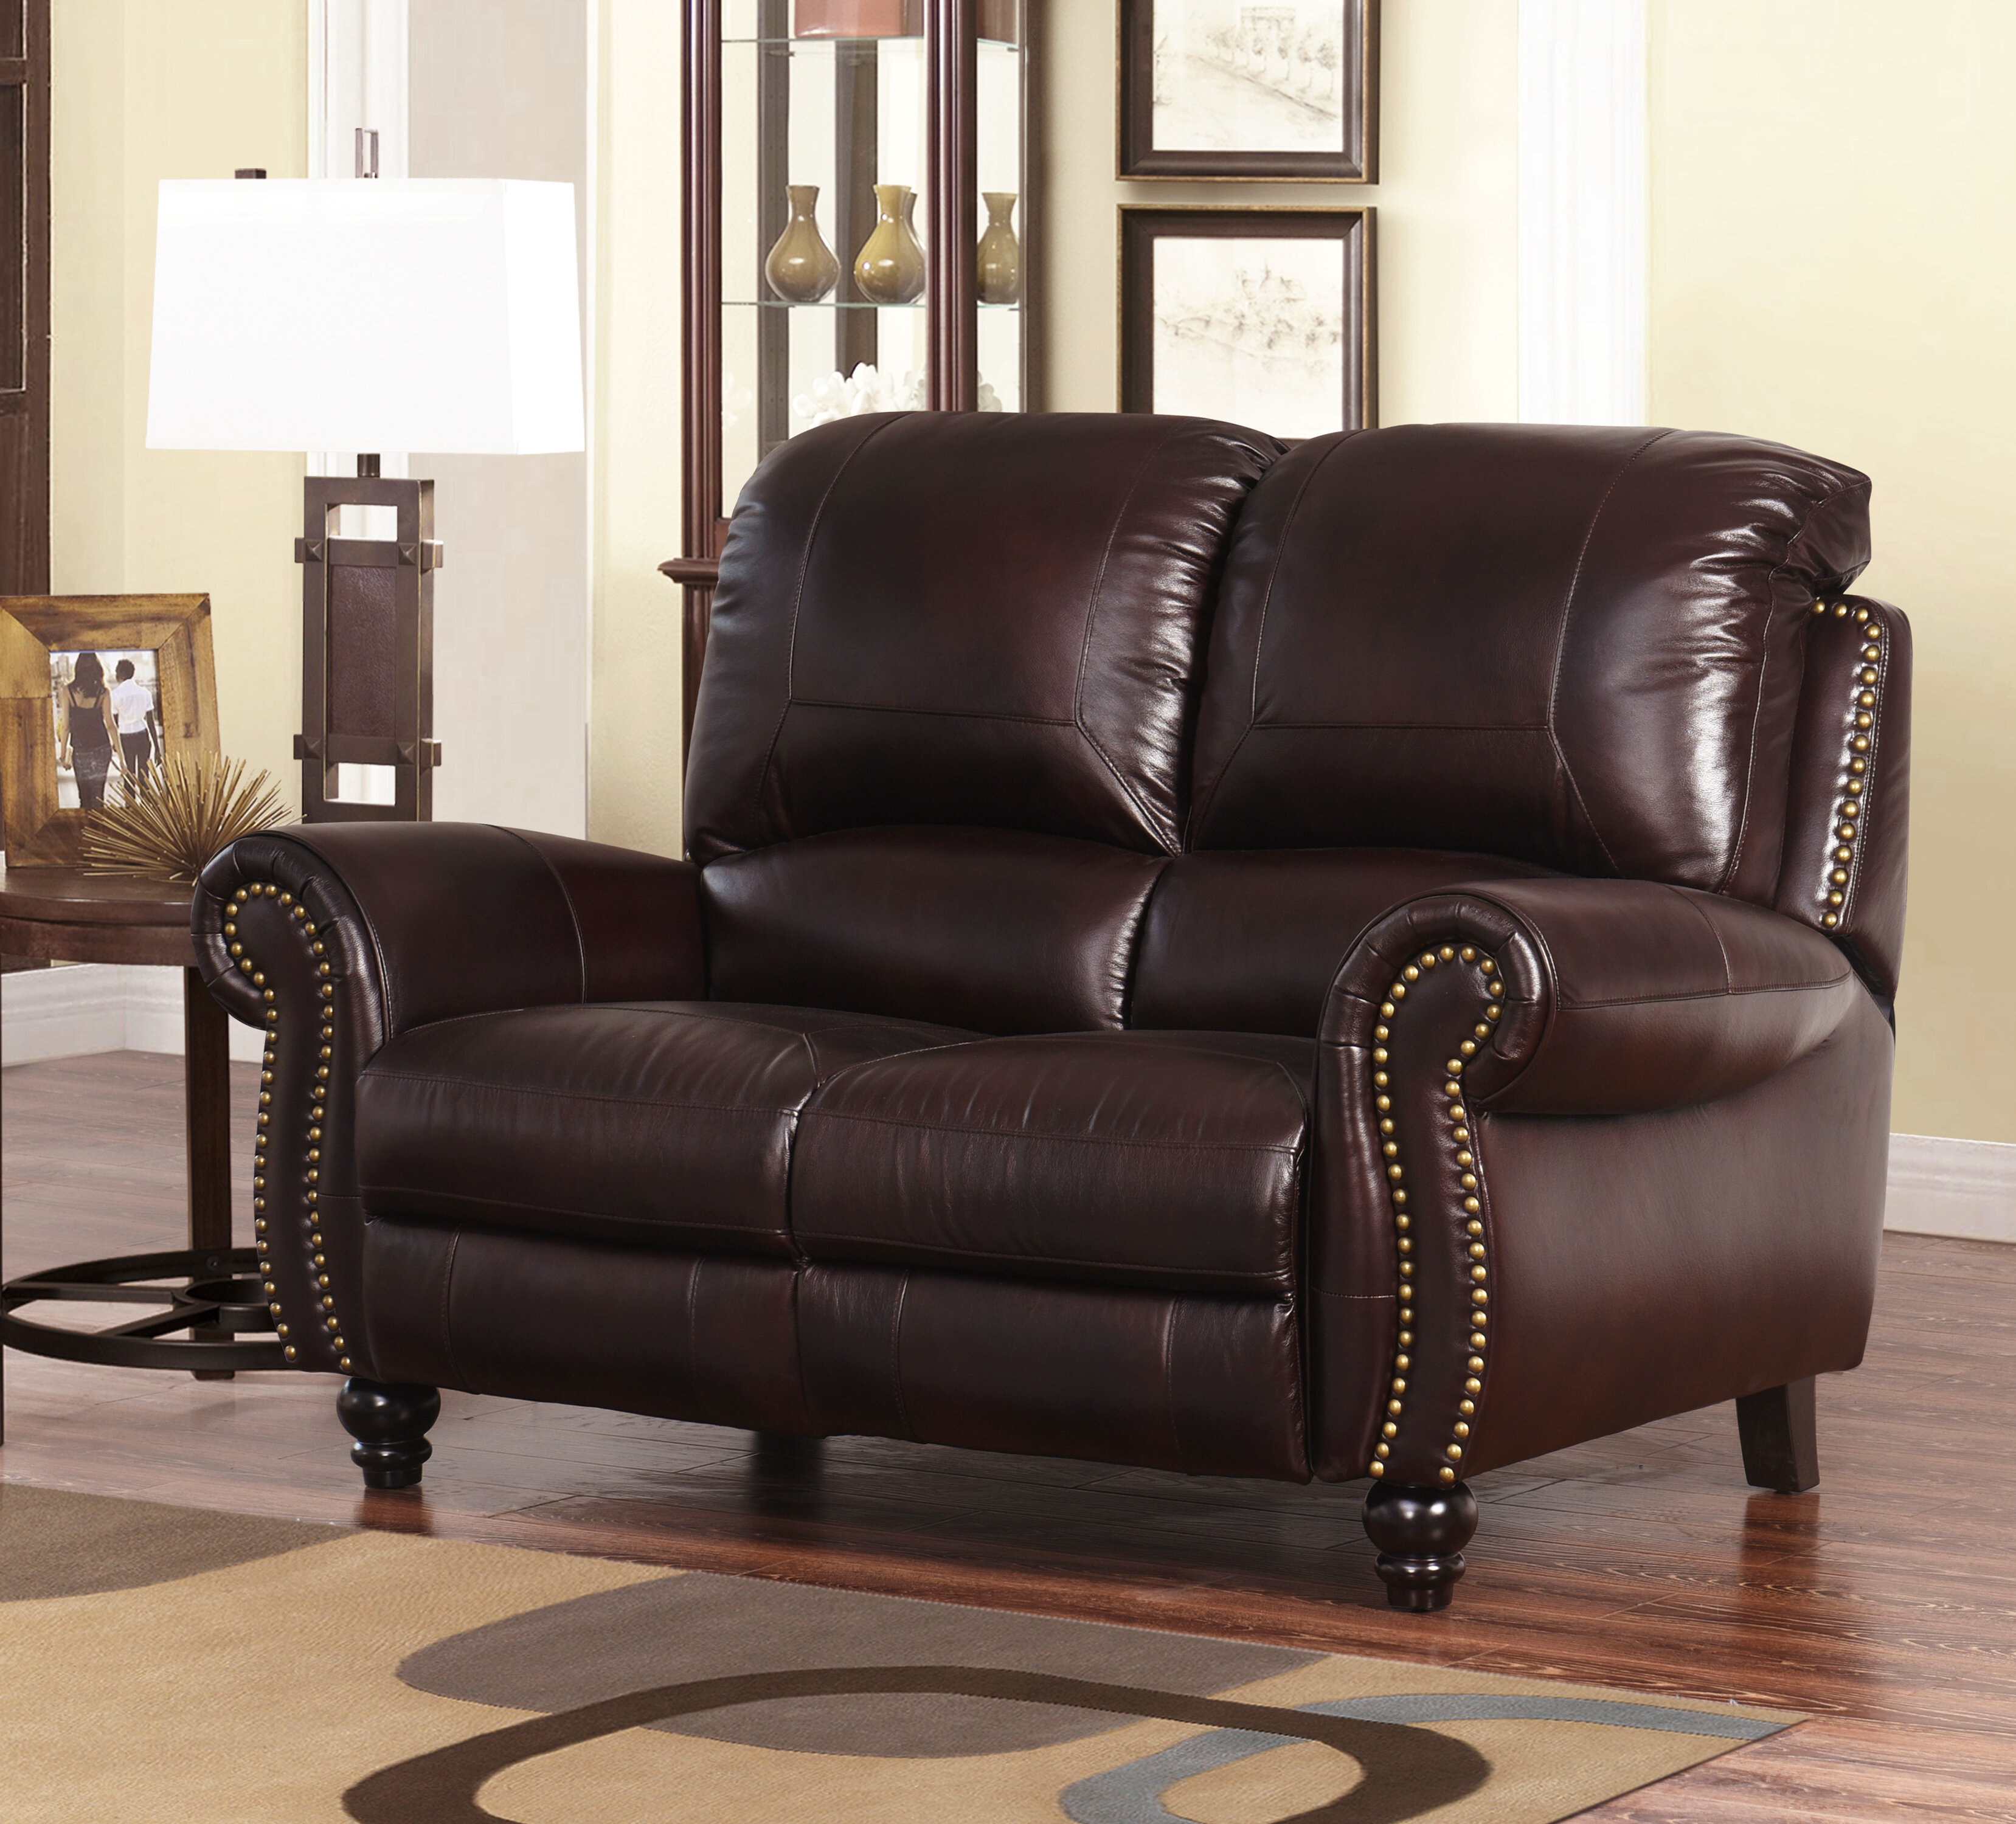 Peachy Williston Forge Tanguay Leather Reclining Loveseat Reviews Cjindustries Chair Design For Home Cjindustriesco